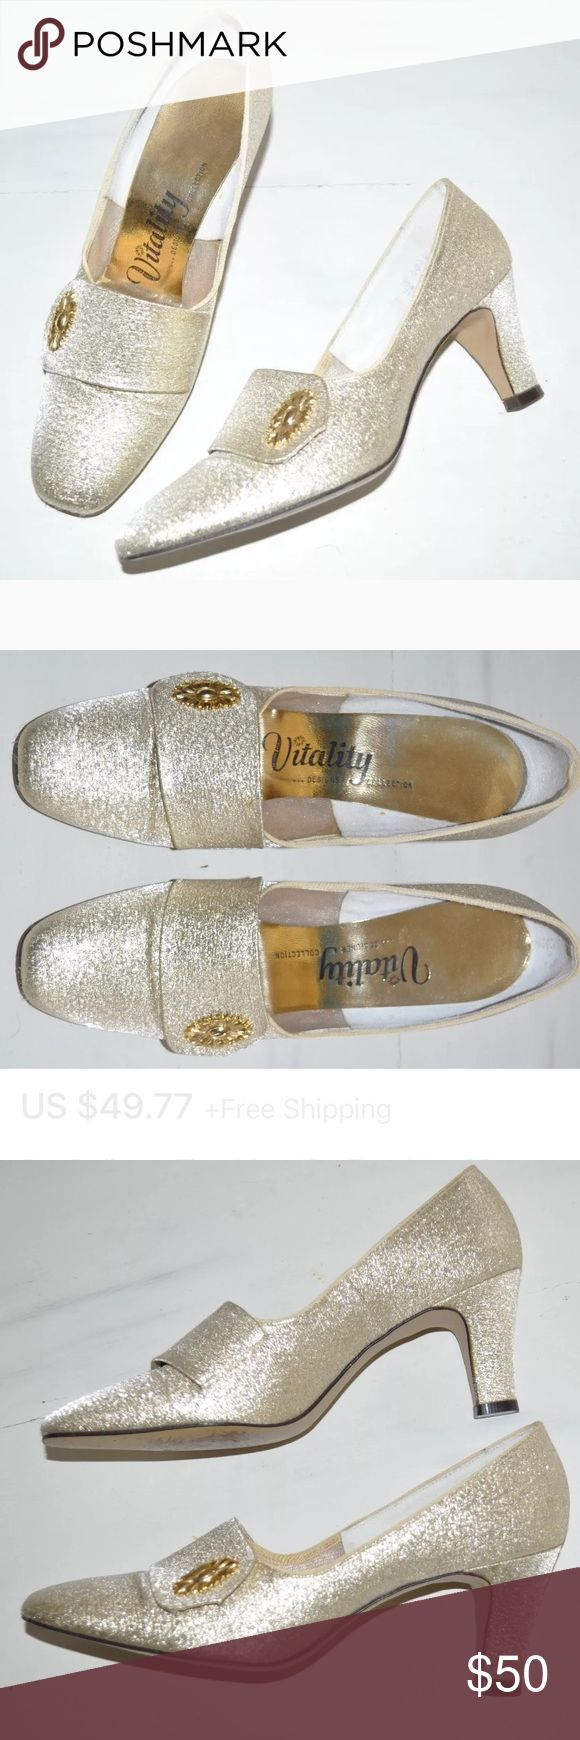 Vintage 1950s 60s Vitality Gold  Pumps Heels Shoes Vintage Mid Century 1950s 1960s  Cosmopolitan Vitality Gold Metallic Brocade Embroidered Embossed Pumps Heels Square Toe  Women's Shoes Vintage Size 7  Excellent, gently used condition. See pics. Comes from nonsmoking home. Vitality Shoes Heels